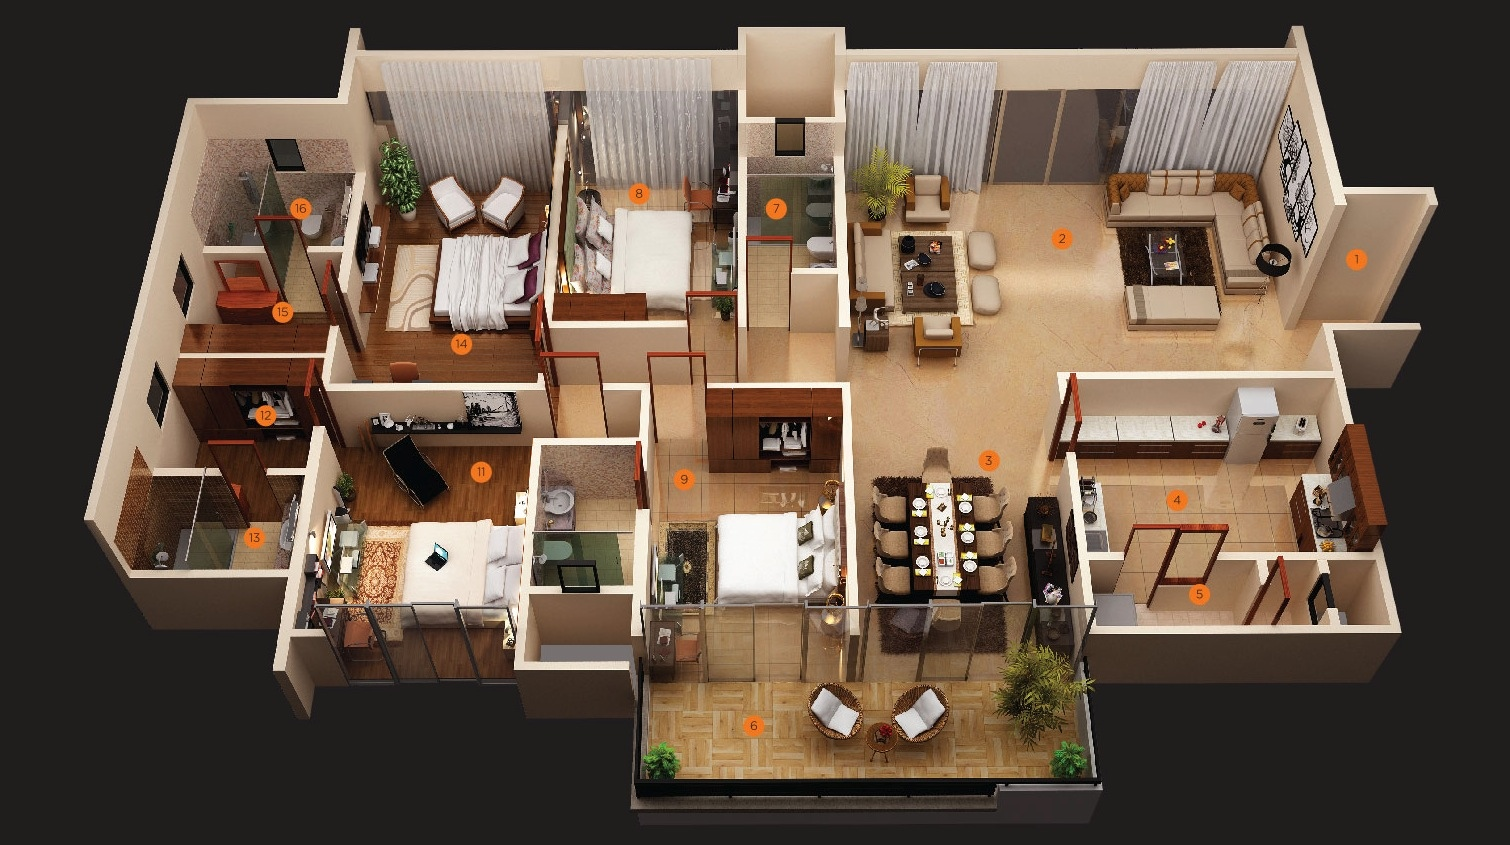 4 bedroom apartment house plans for 3d room layout